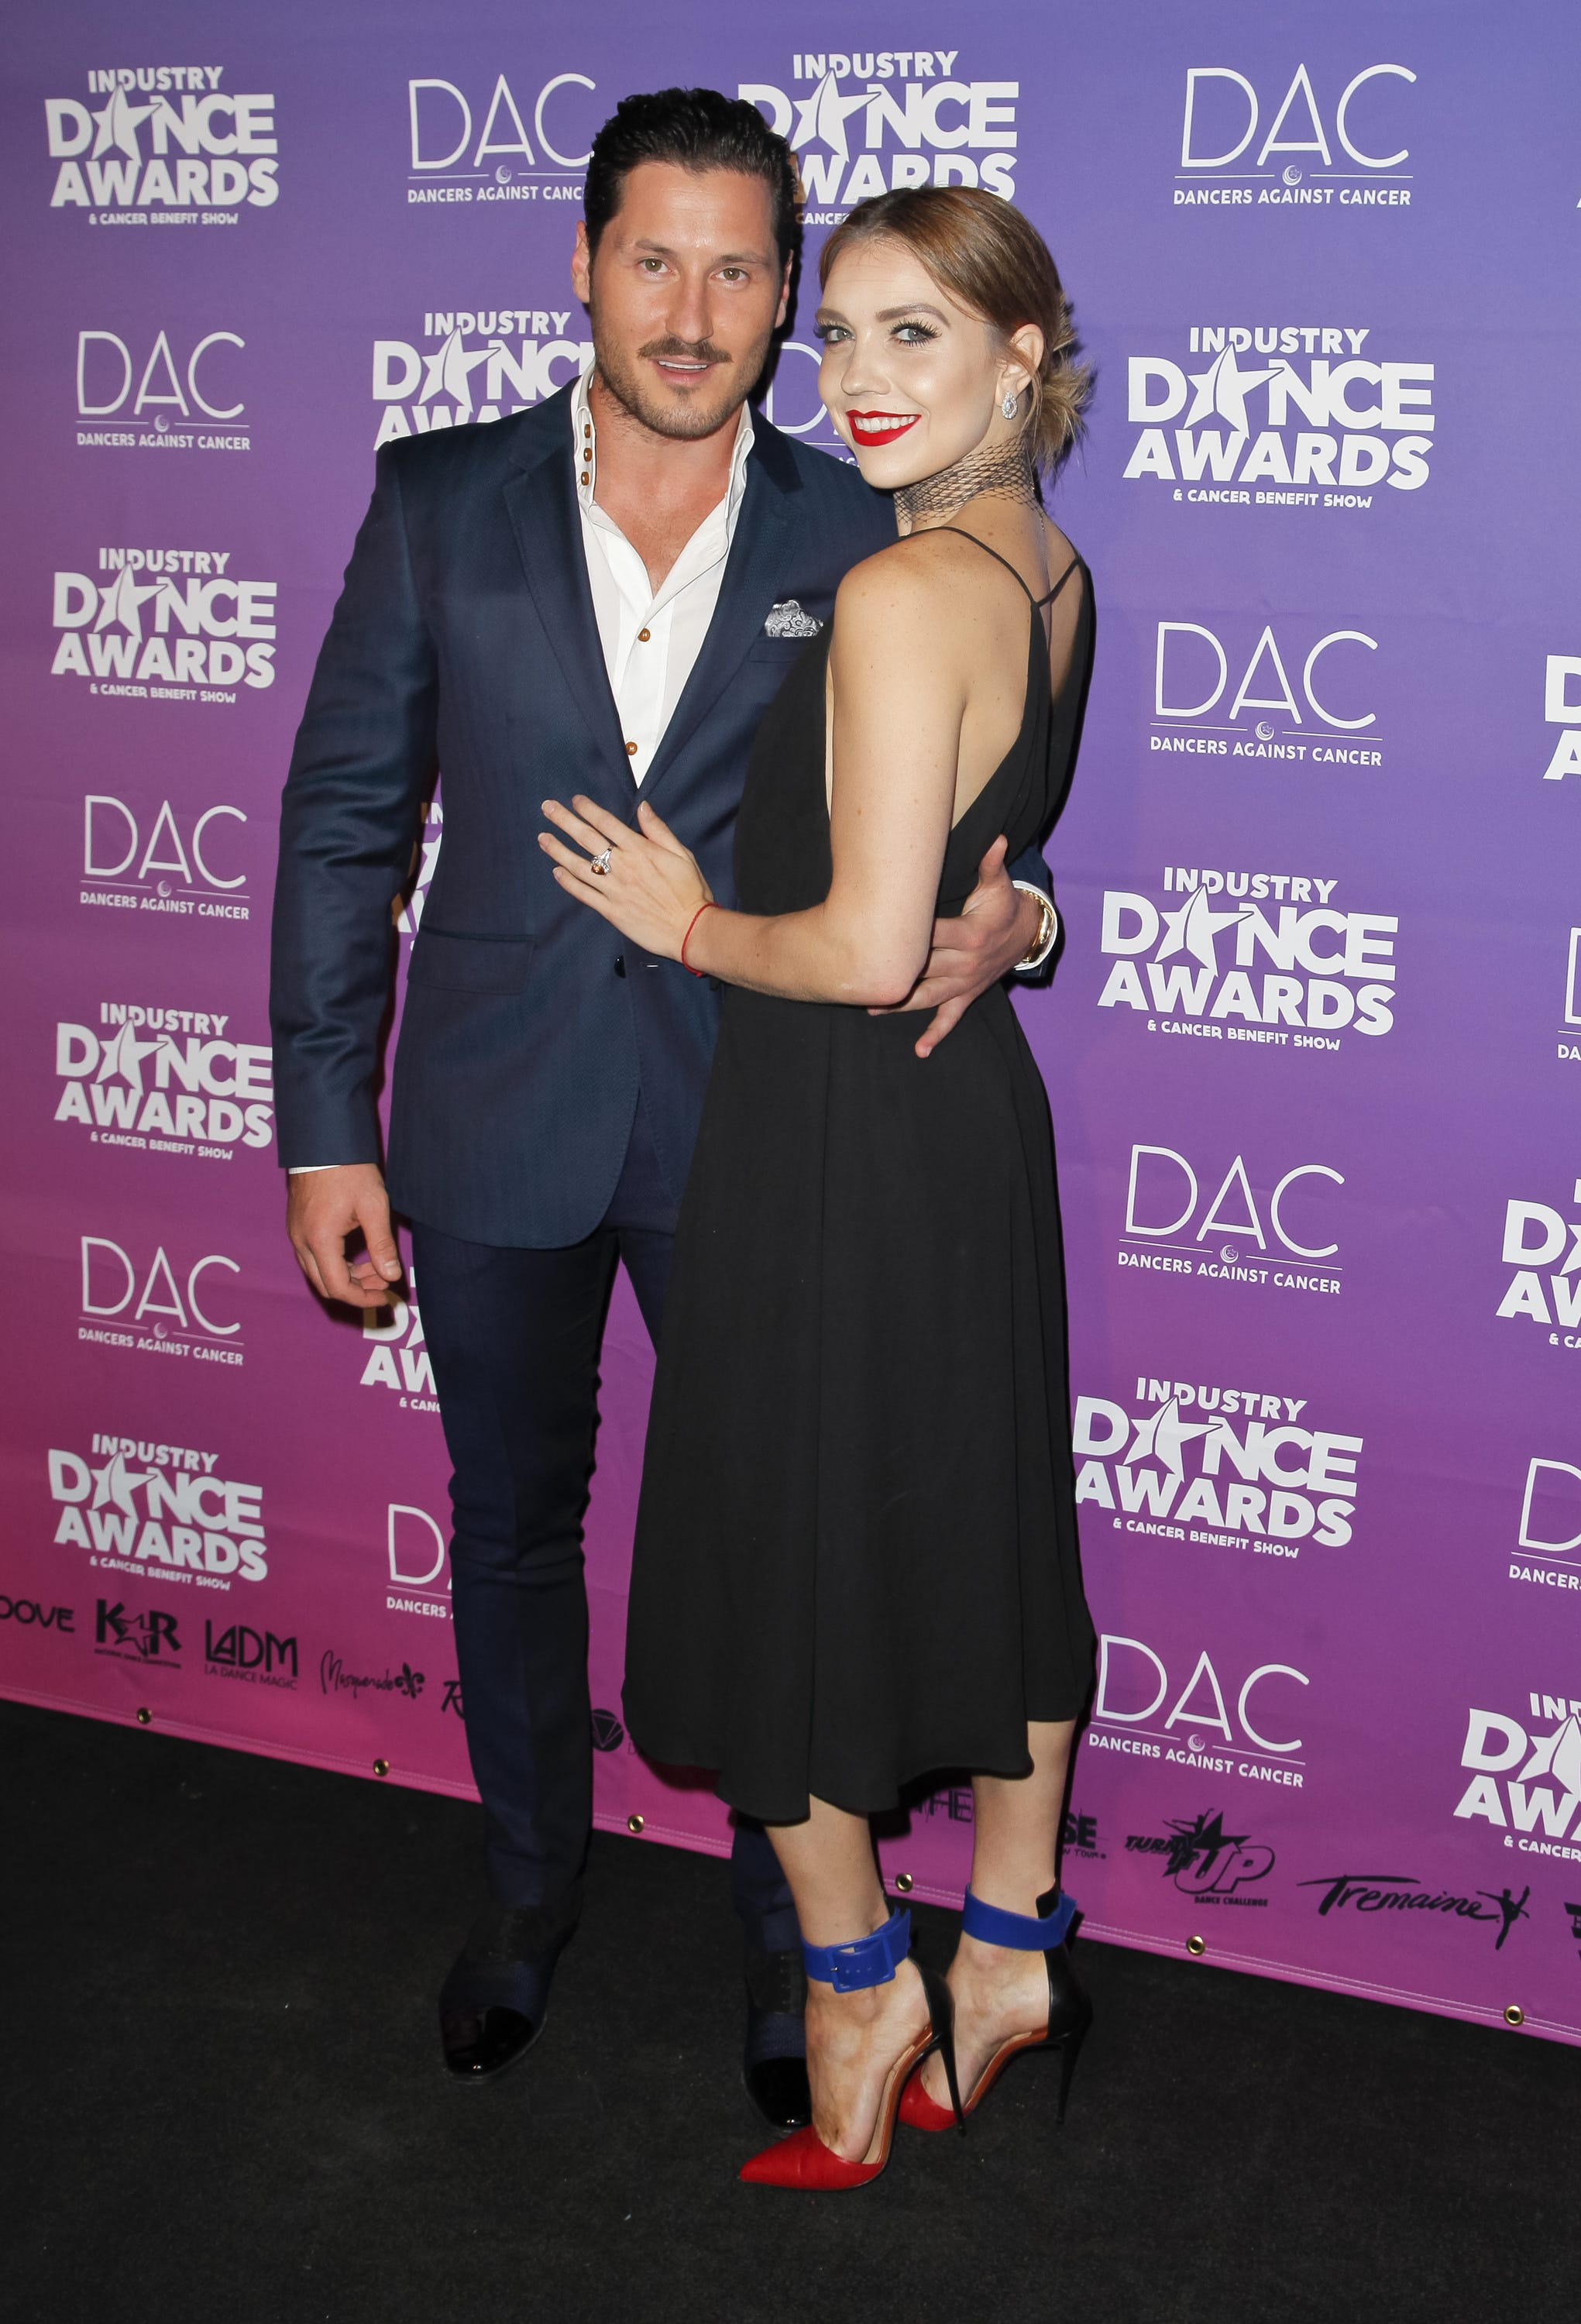 Are alex and emma from dwts dating